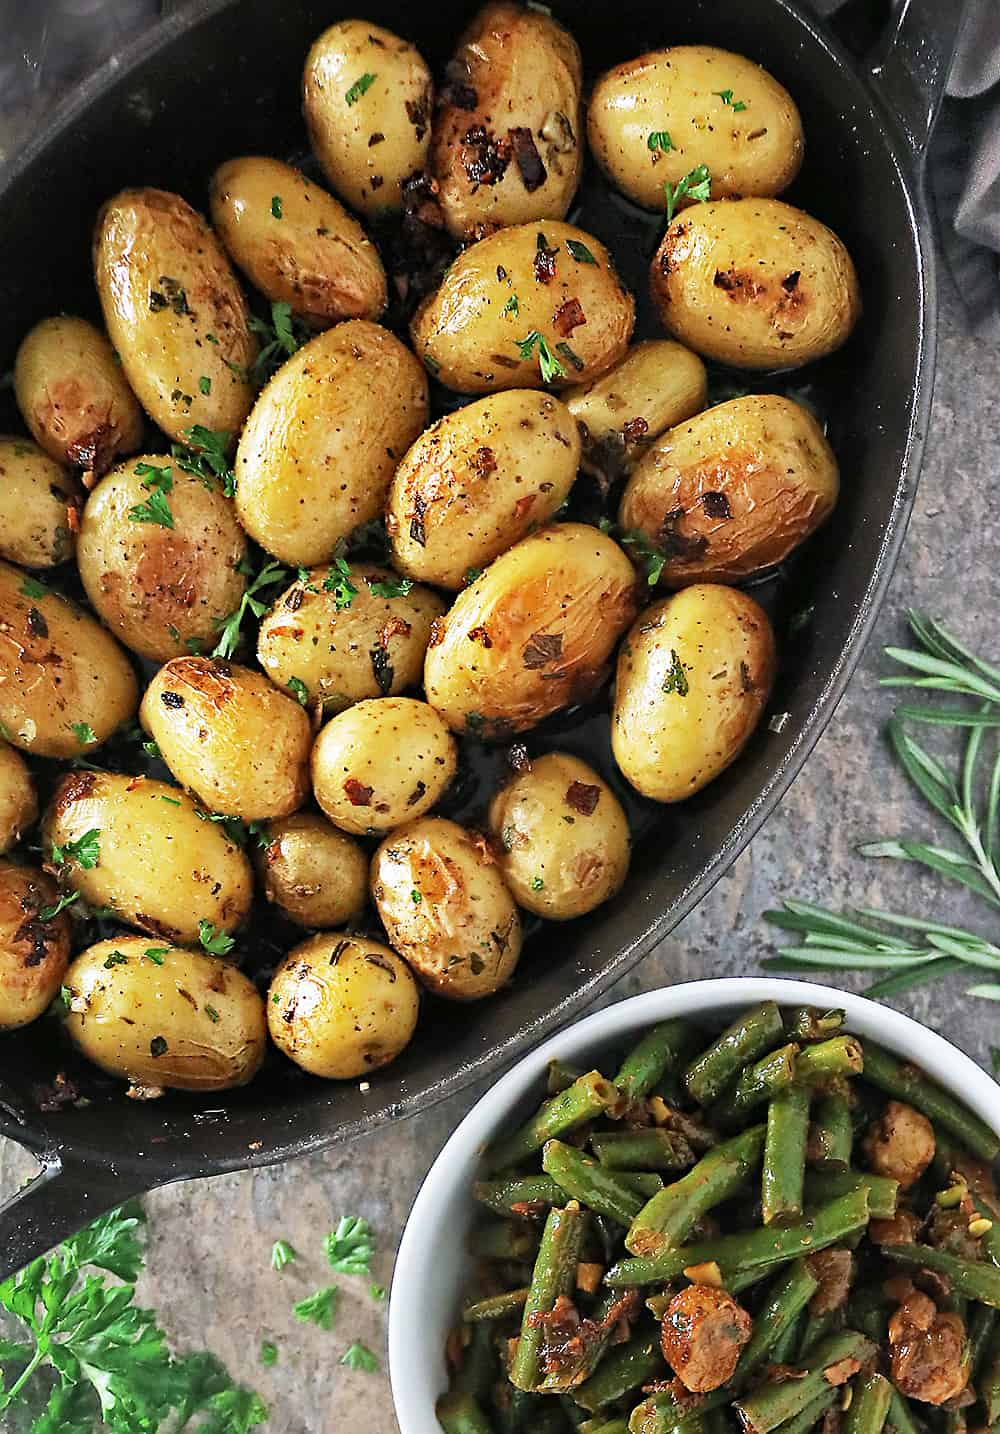 Image of Cast Iron baked melt in your mouth potatoes